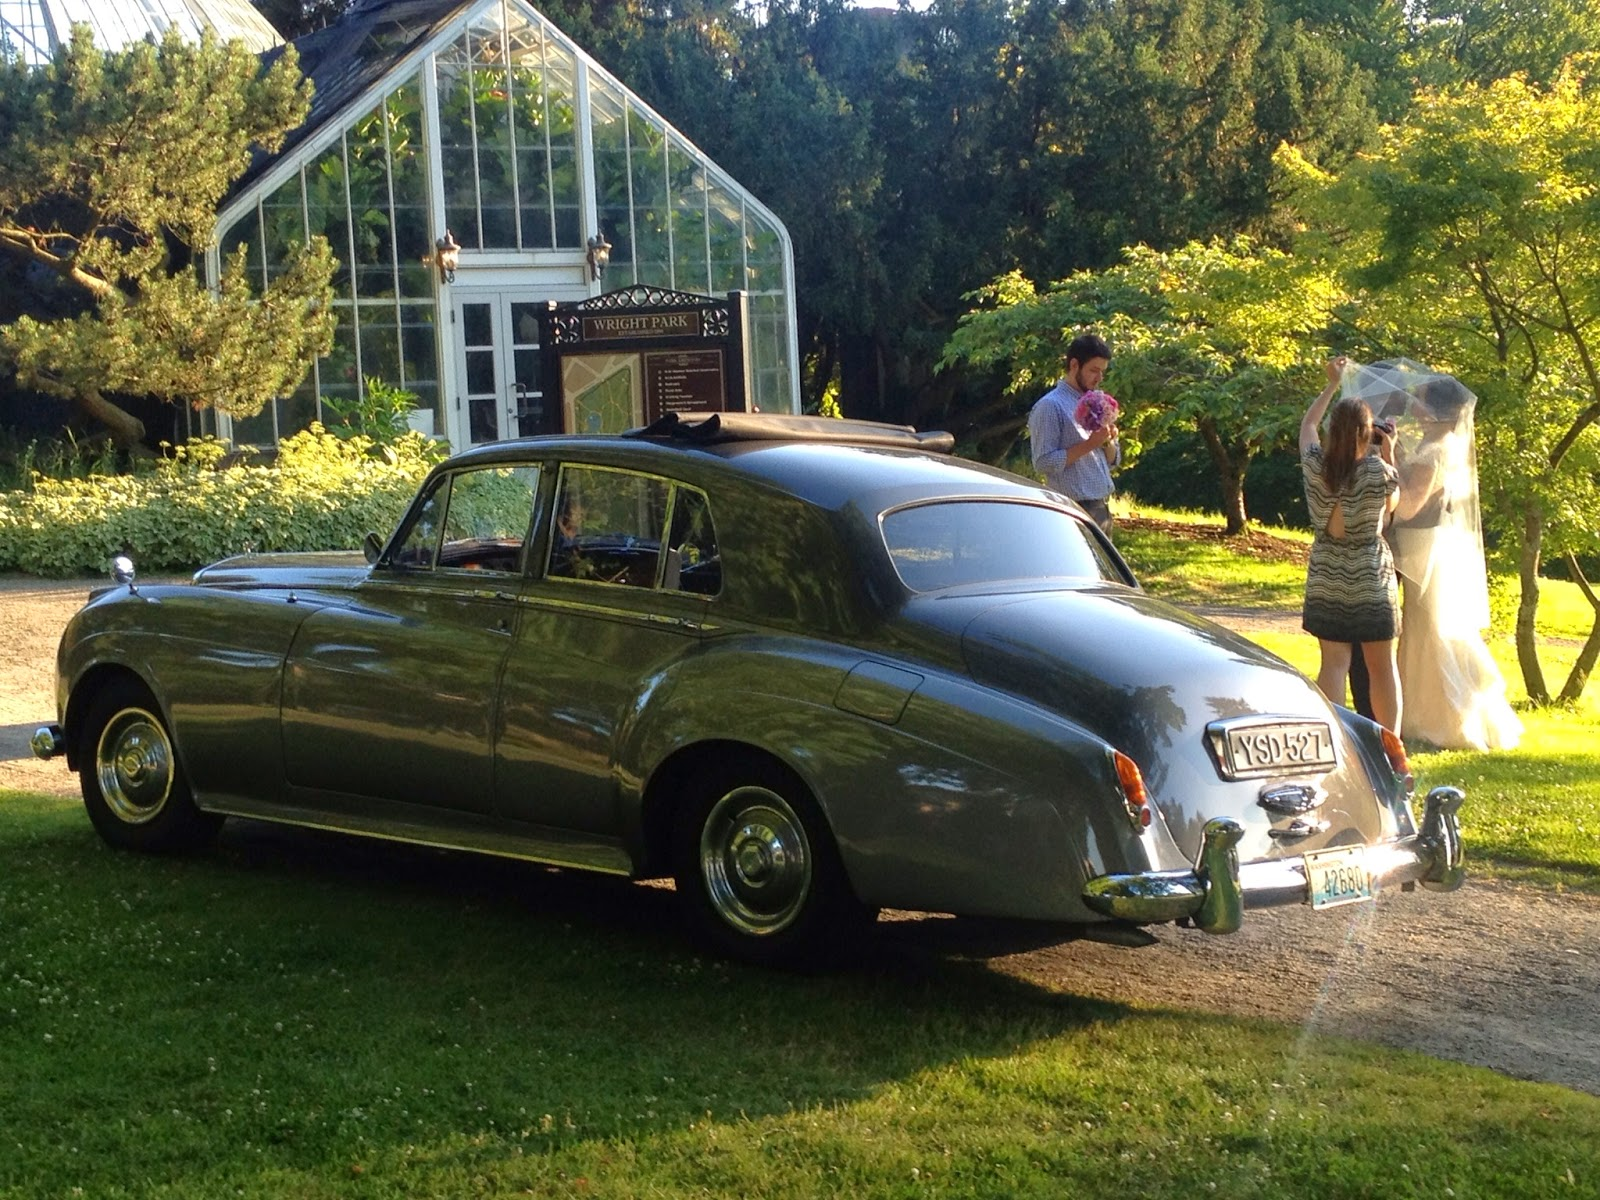 Seattle Top Class Limo: Classic Car Rental For Wedding, Seattle ...